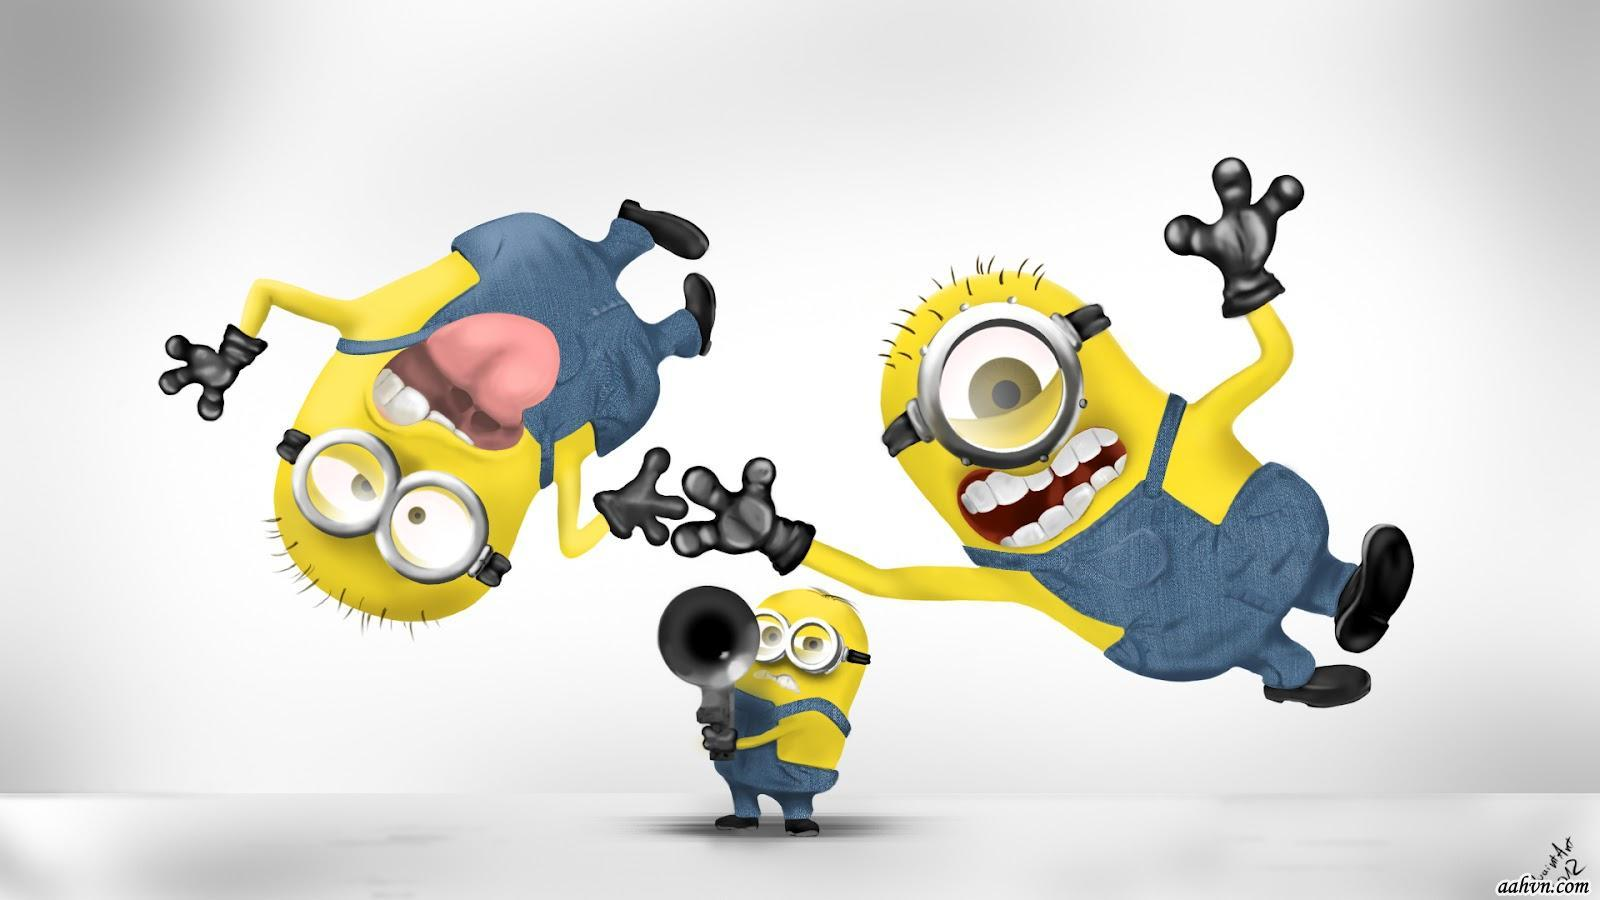 Download HD Minion Wallpapers for Mobile Phones | Techbeasts